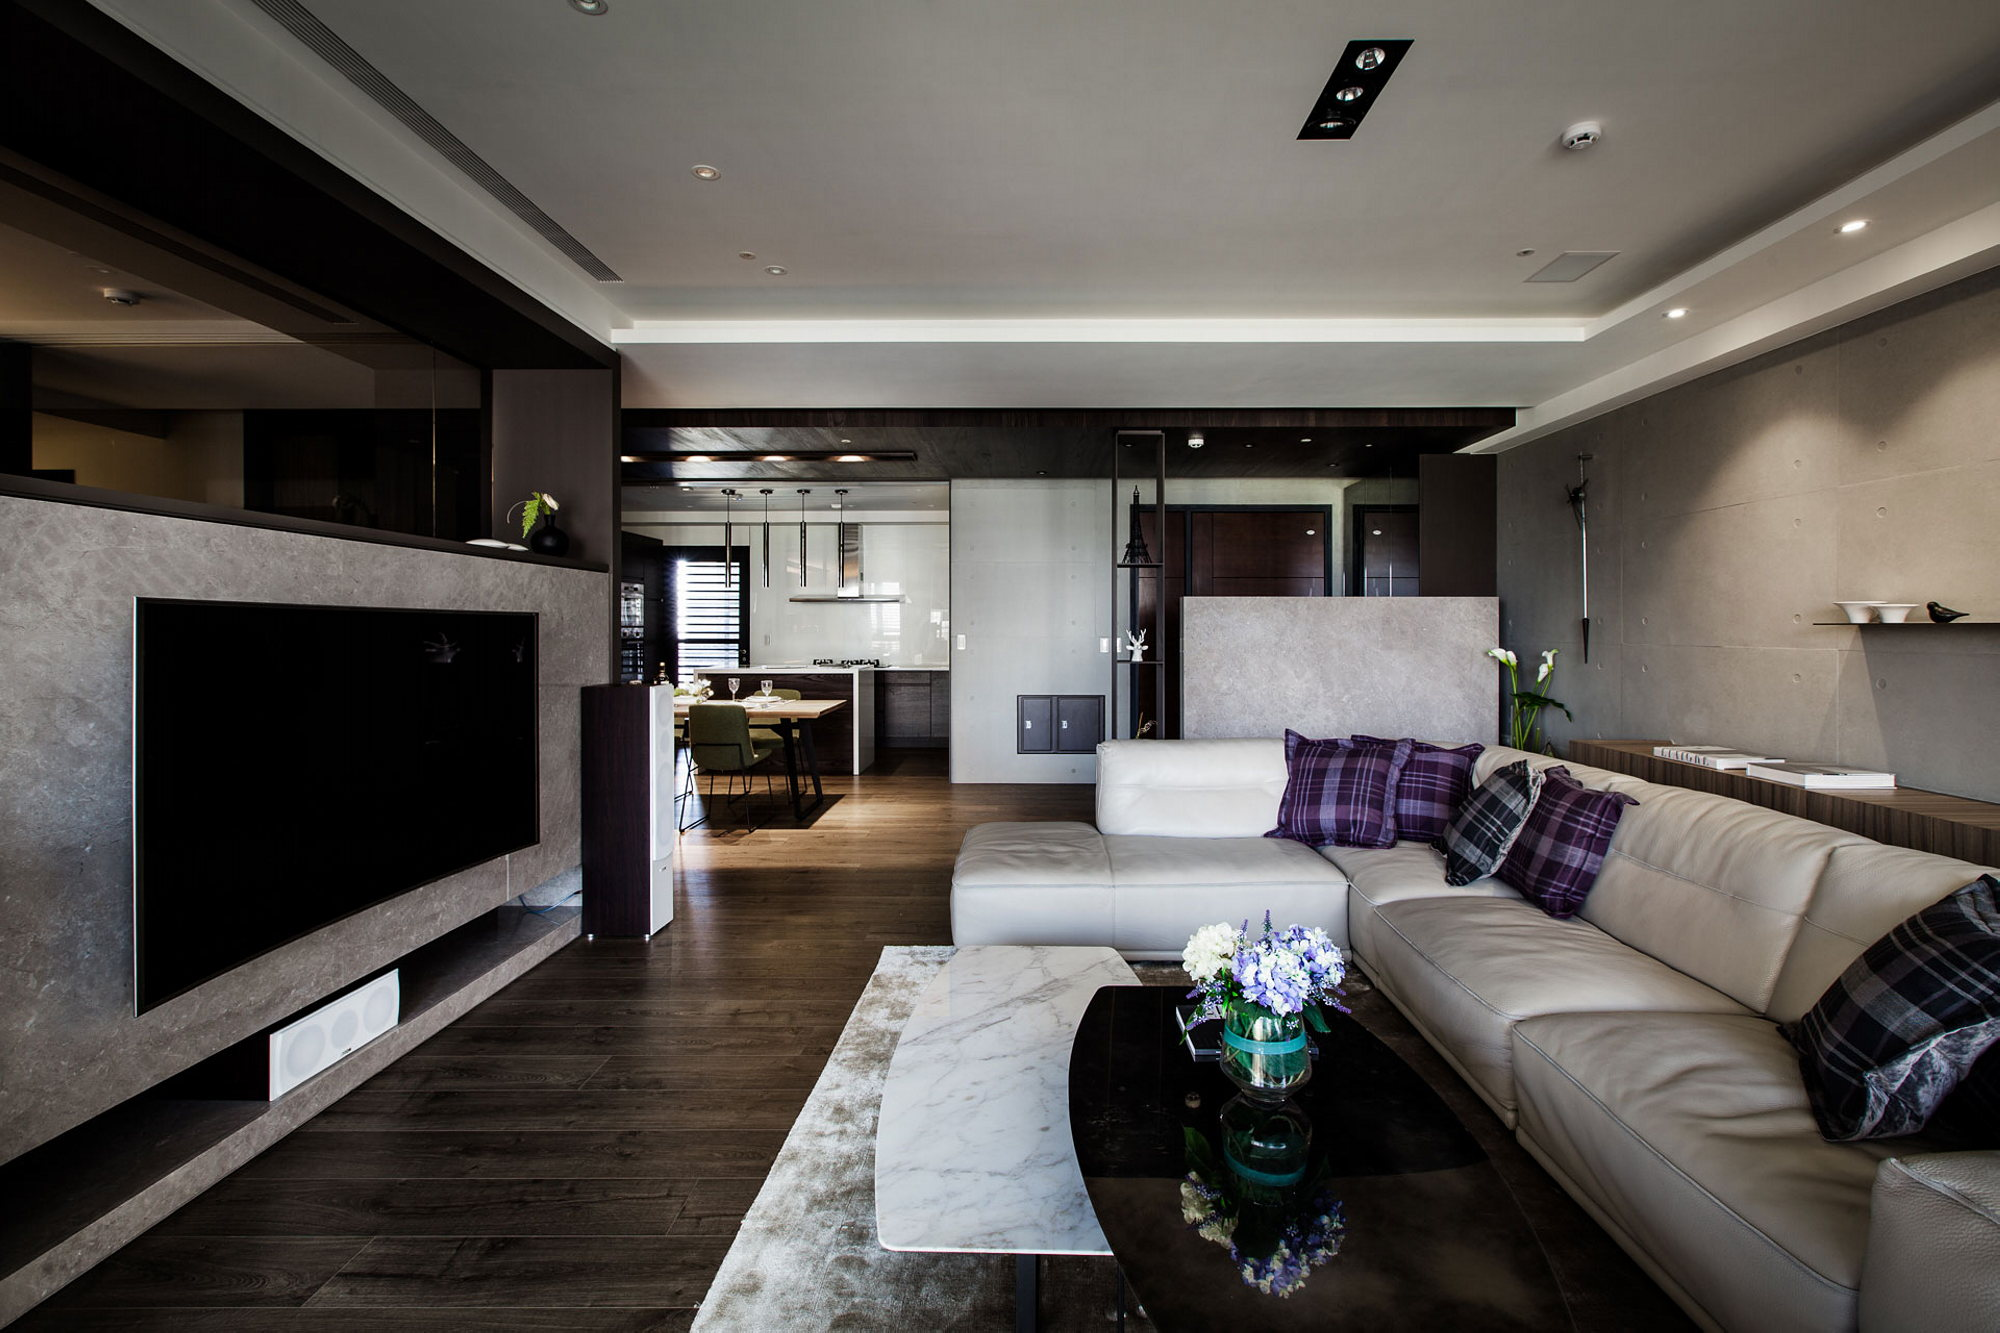 Modern Apartments In The Minimalism Style At Taiwan